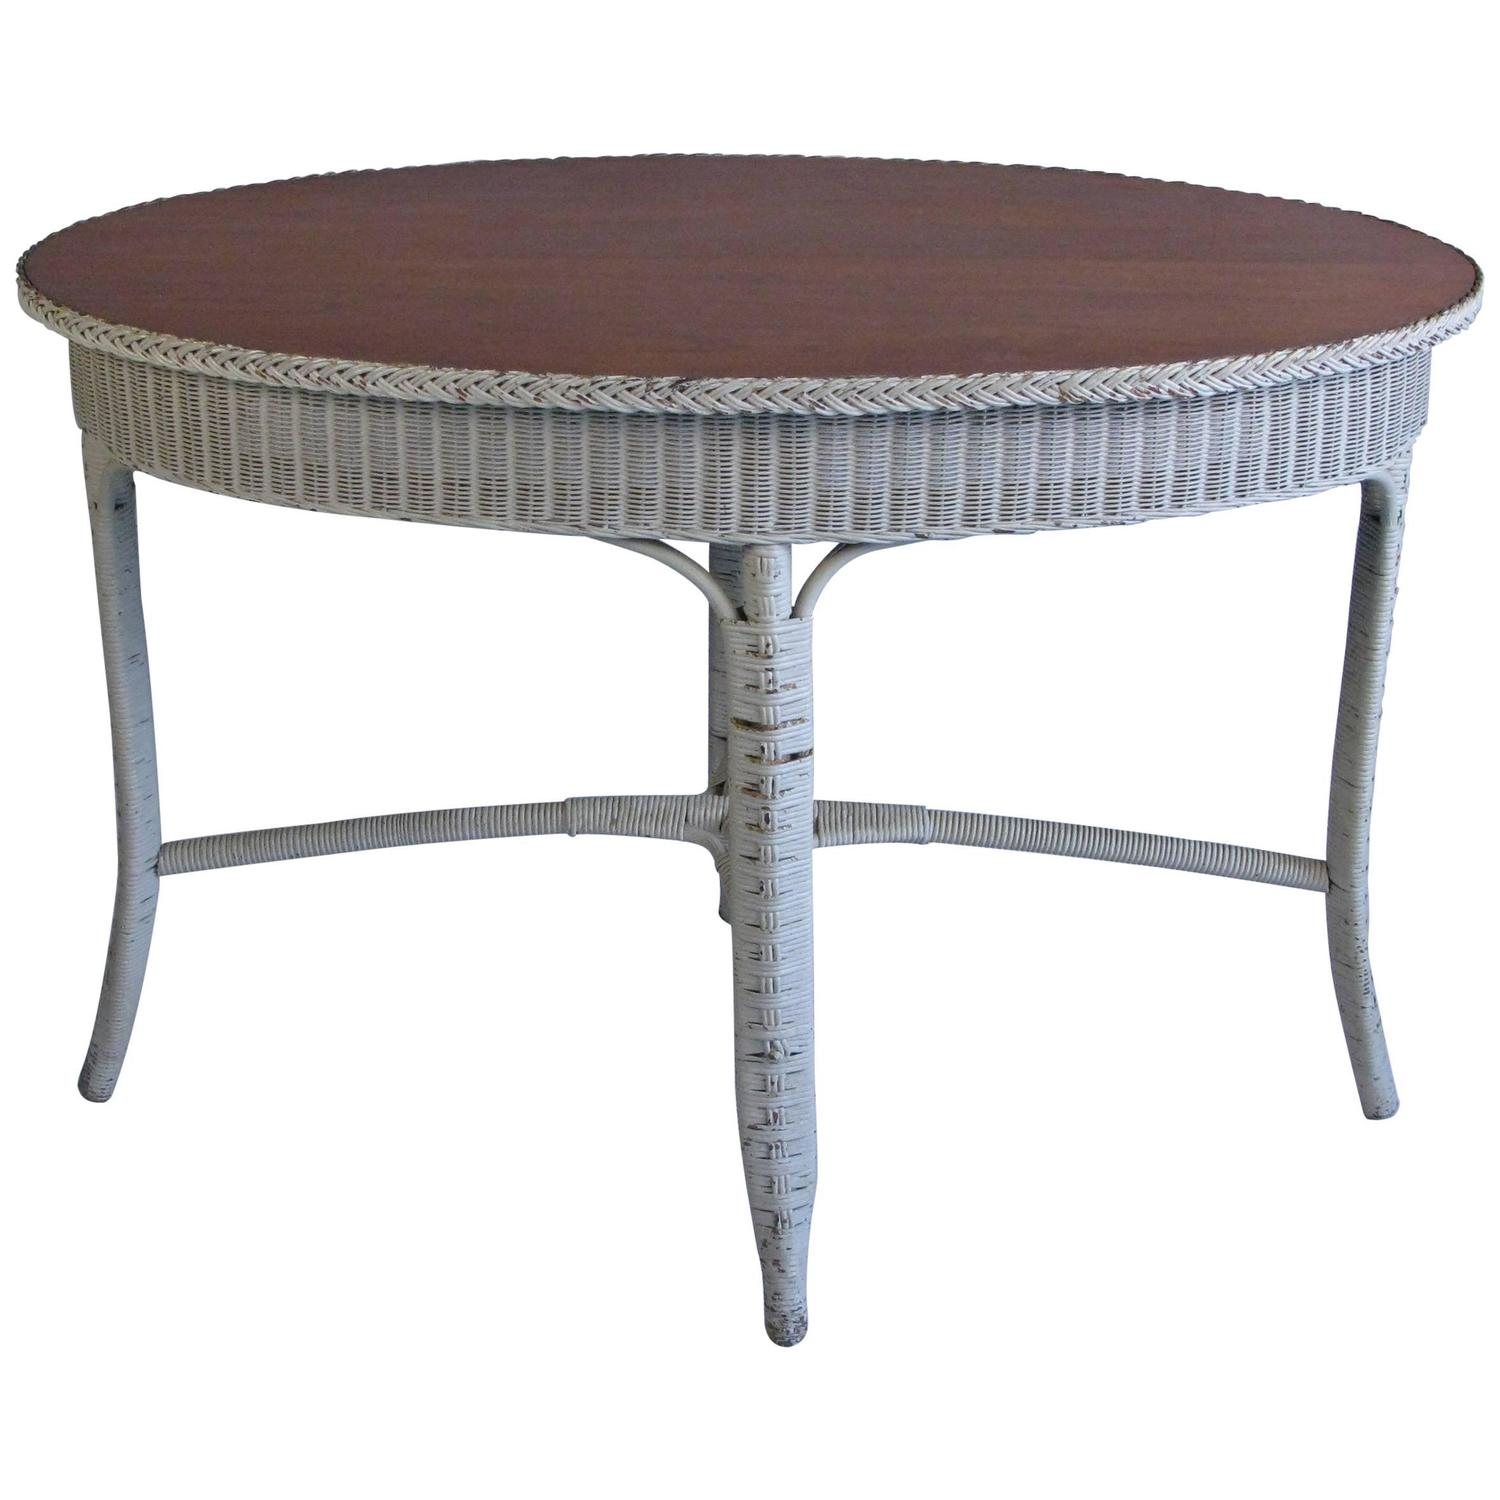 1930s Oval Wicker Table by Heywood Wakefield at 1stdibs